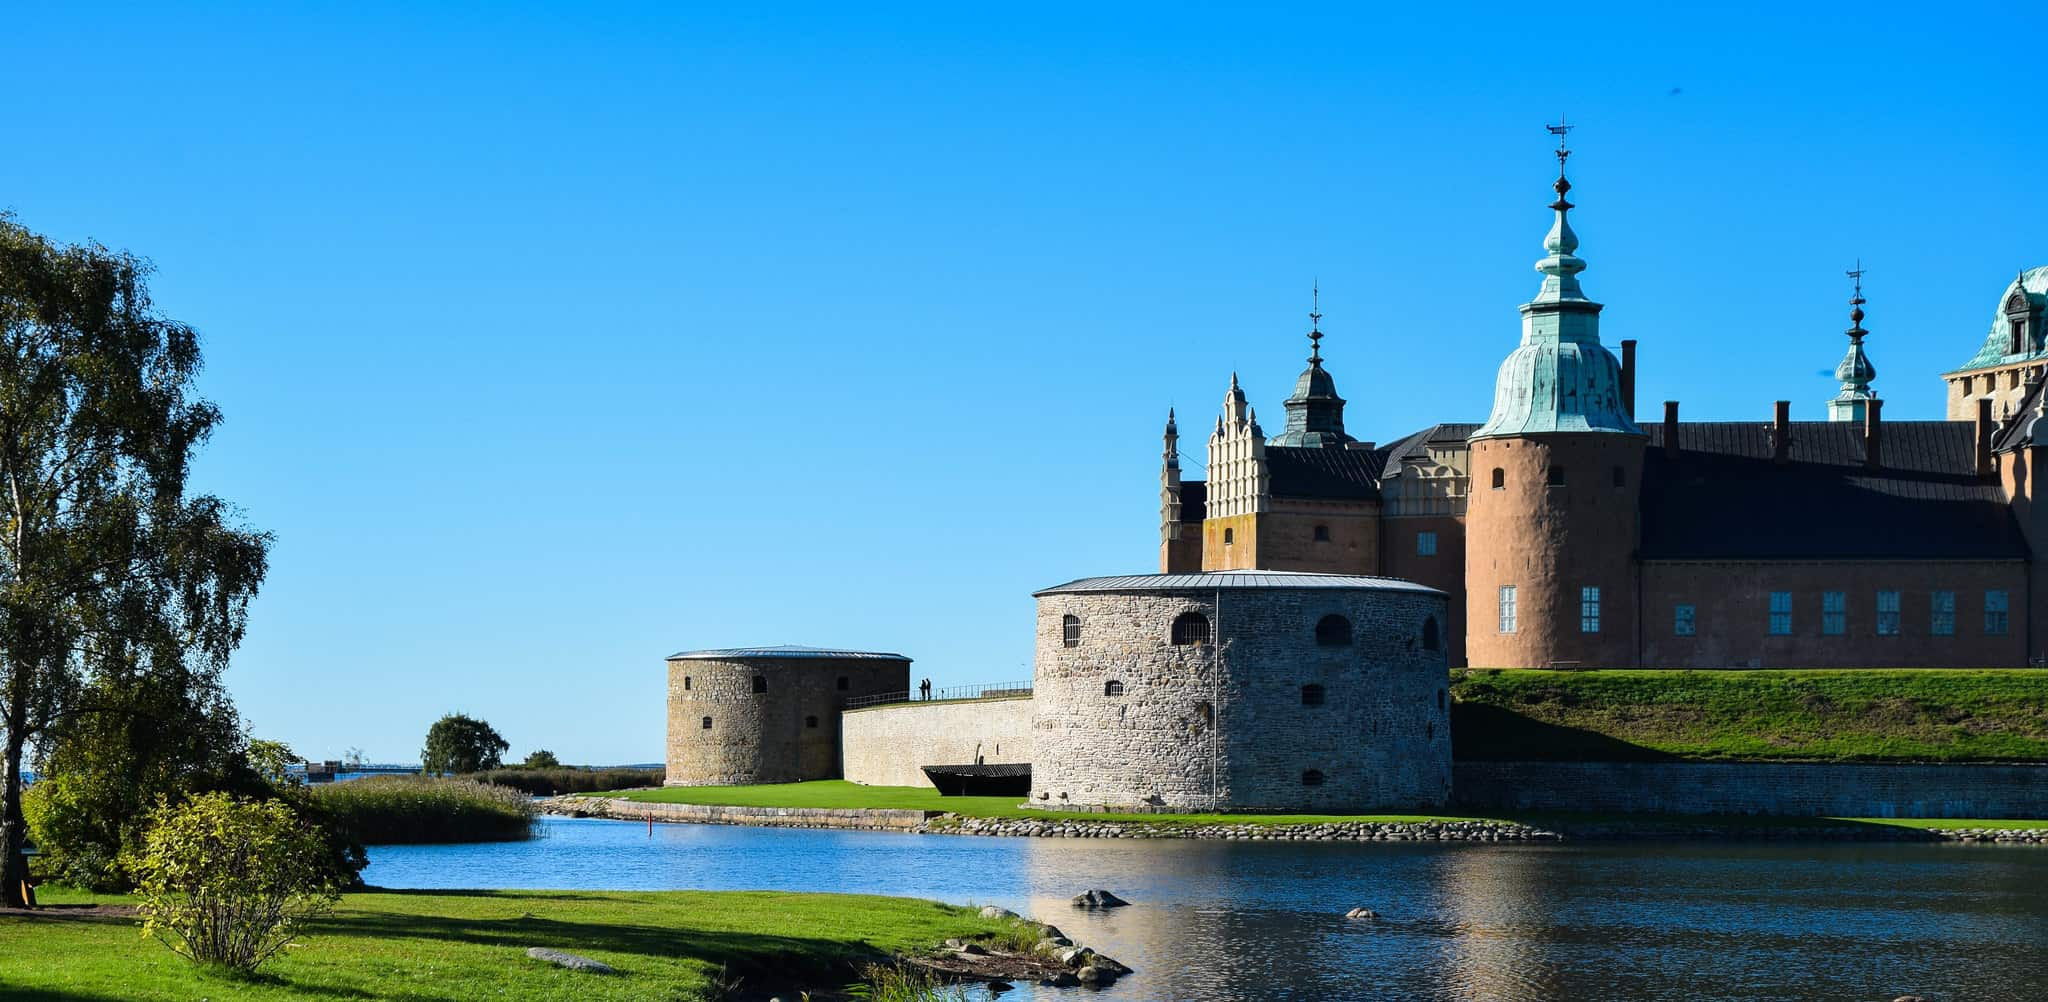 Kalmar Castle displays both permanent exhibitions, which tell the castle's dramatic history, and temporary exhibitions with different themes.